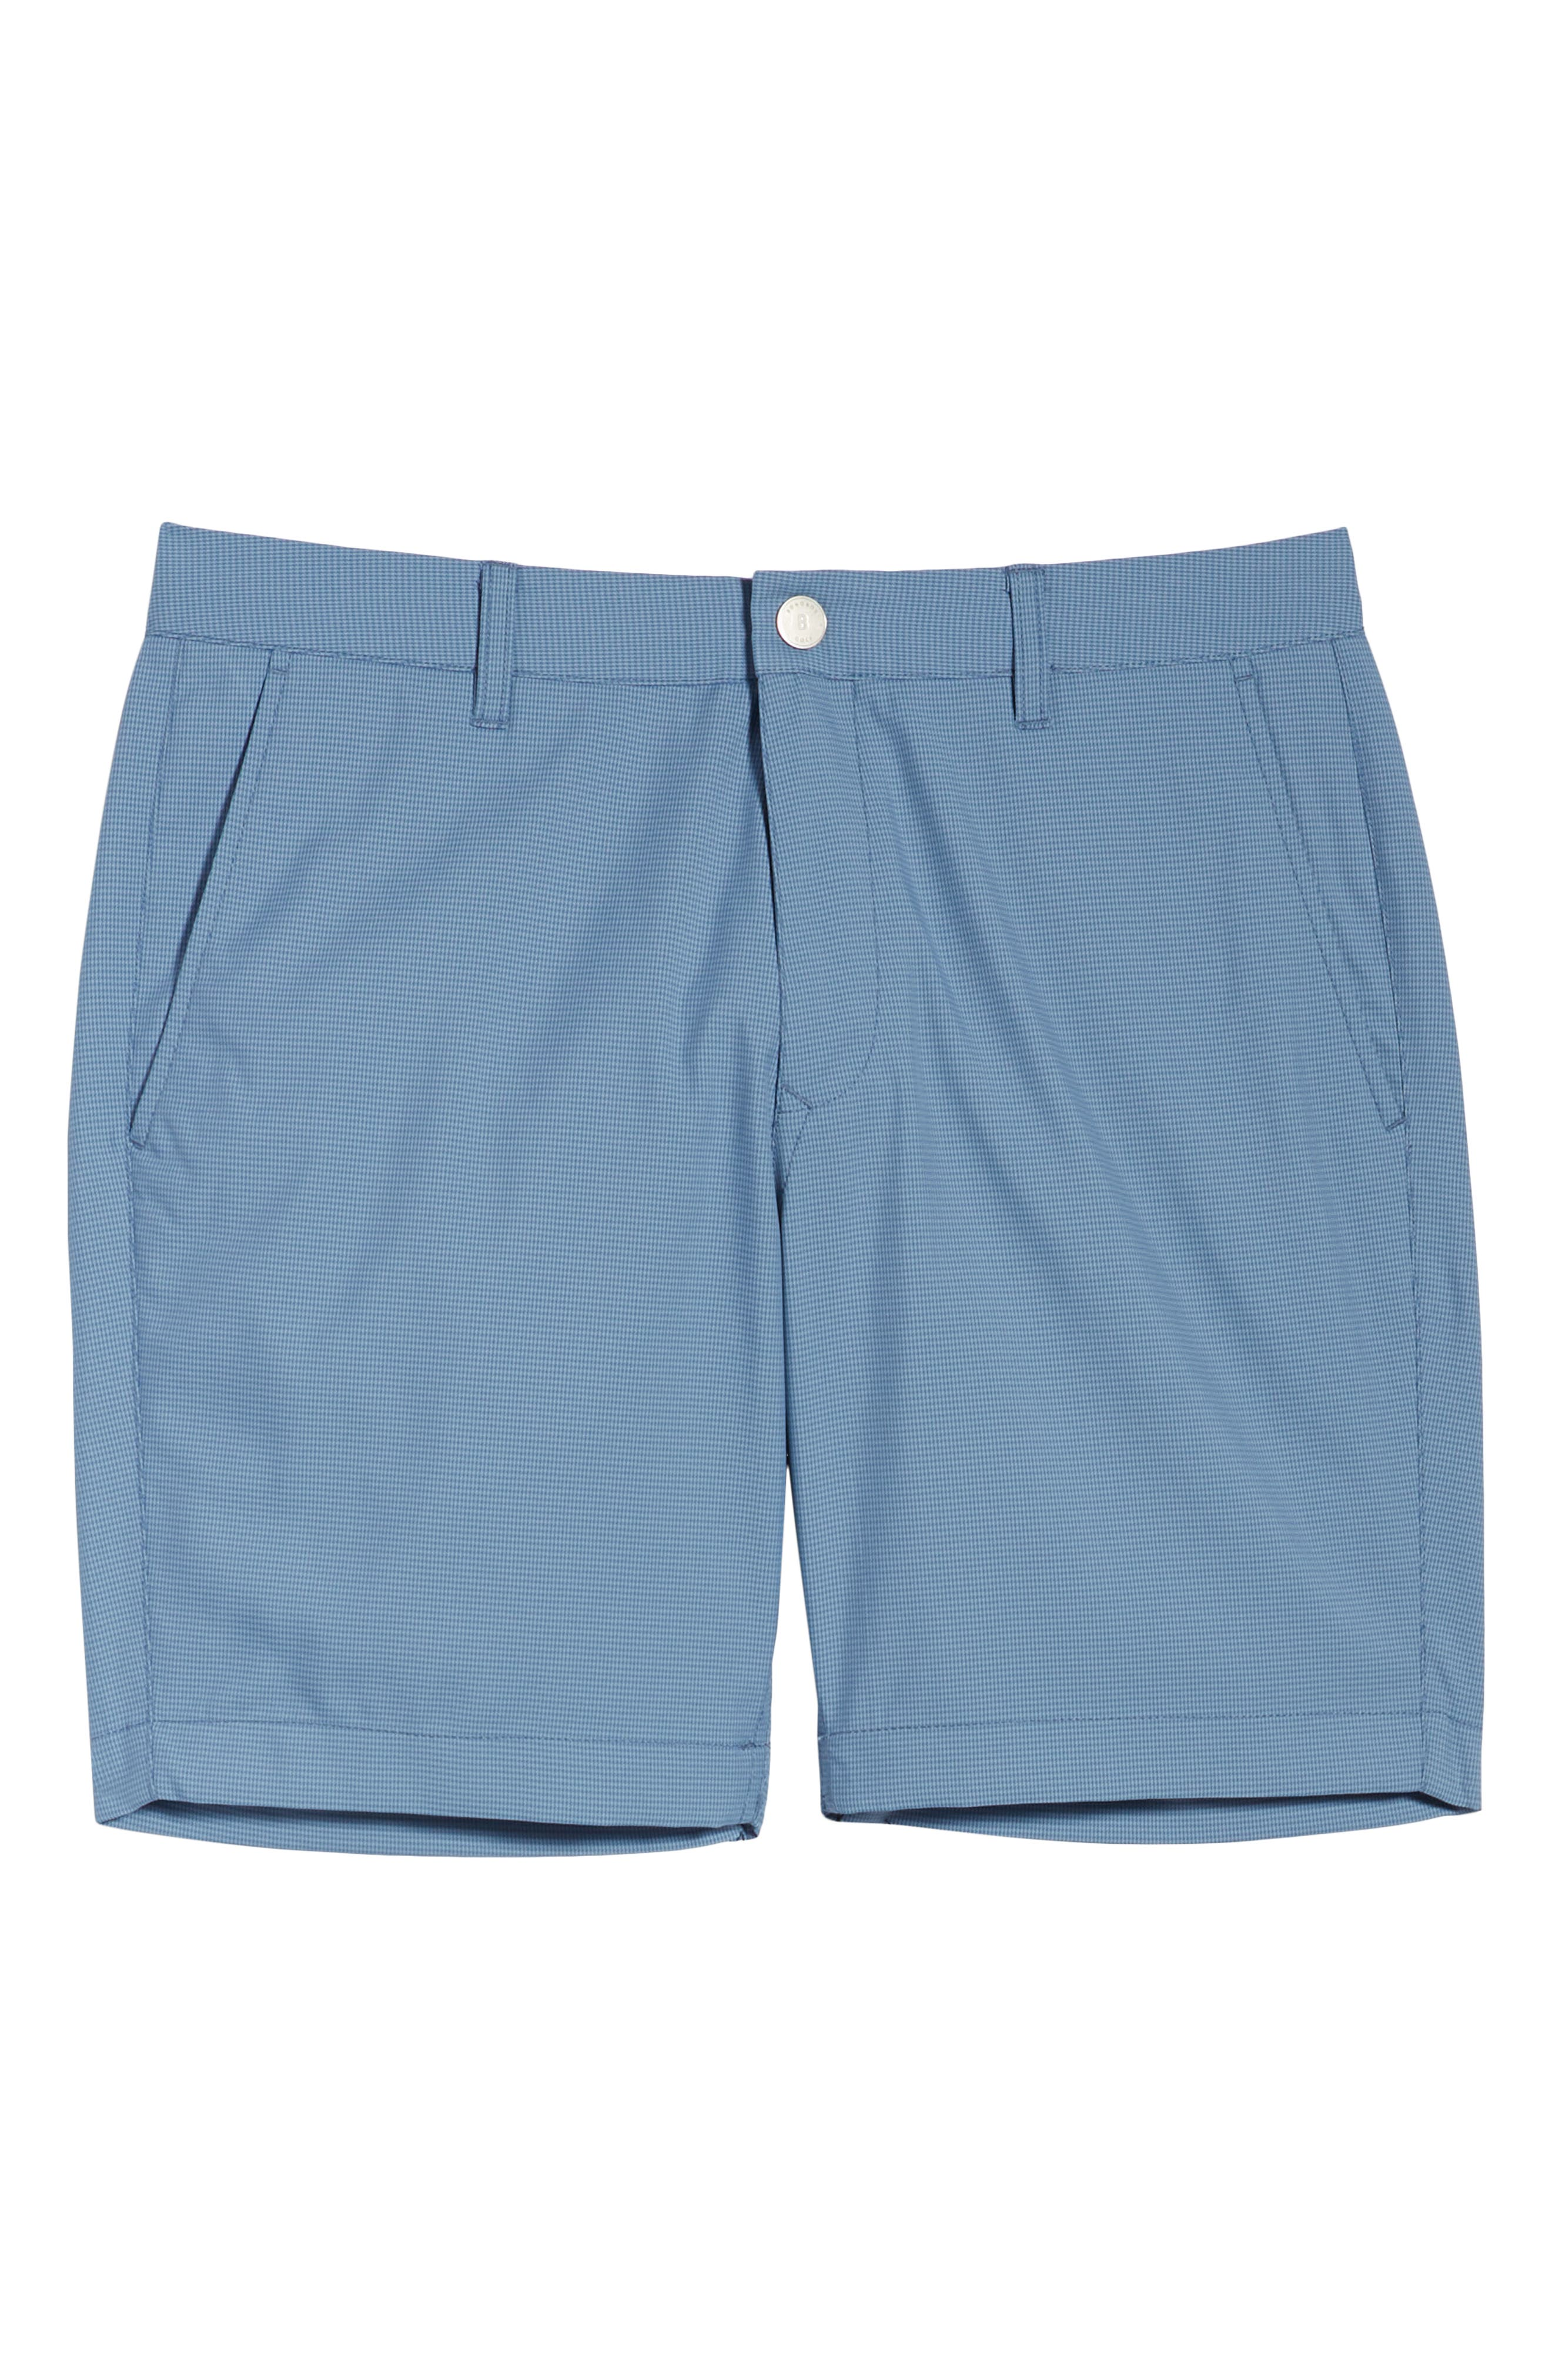 BONOBOS, The Highland Micro Houndstooth Golf Shorts, Alternate thumbnail 6, color, BLUE MINICHECK C3